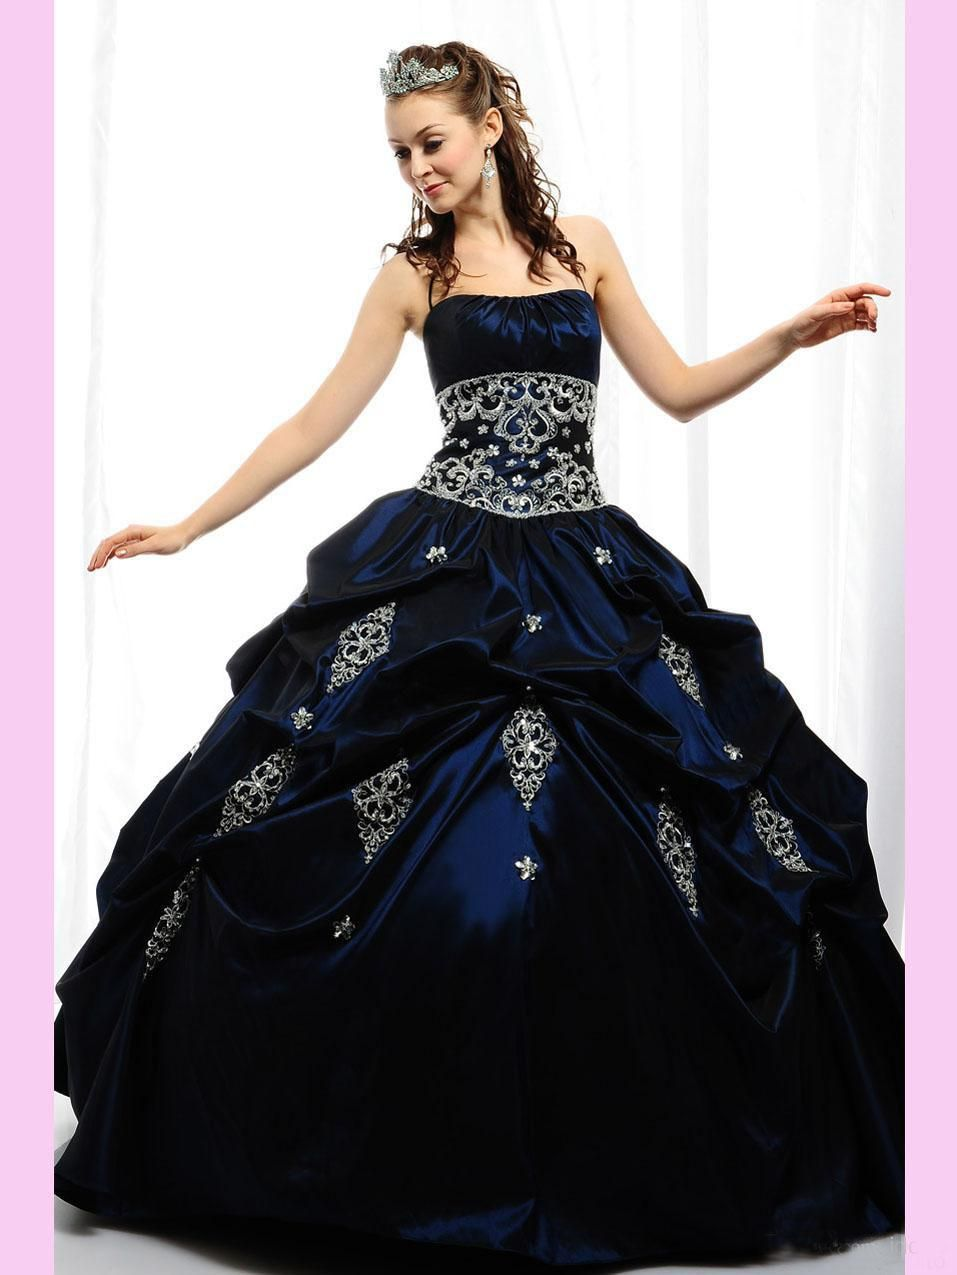 New Arrival 2014 Sweet 16 Dresses Navy Quinceanera Dresses Ball Gown Sweetheart Beads Girls Prom Party Dresses Lace Up Debutante Gowns